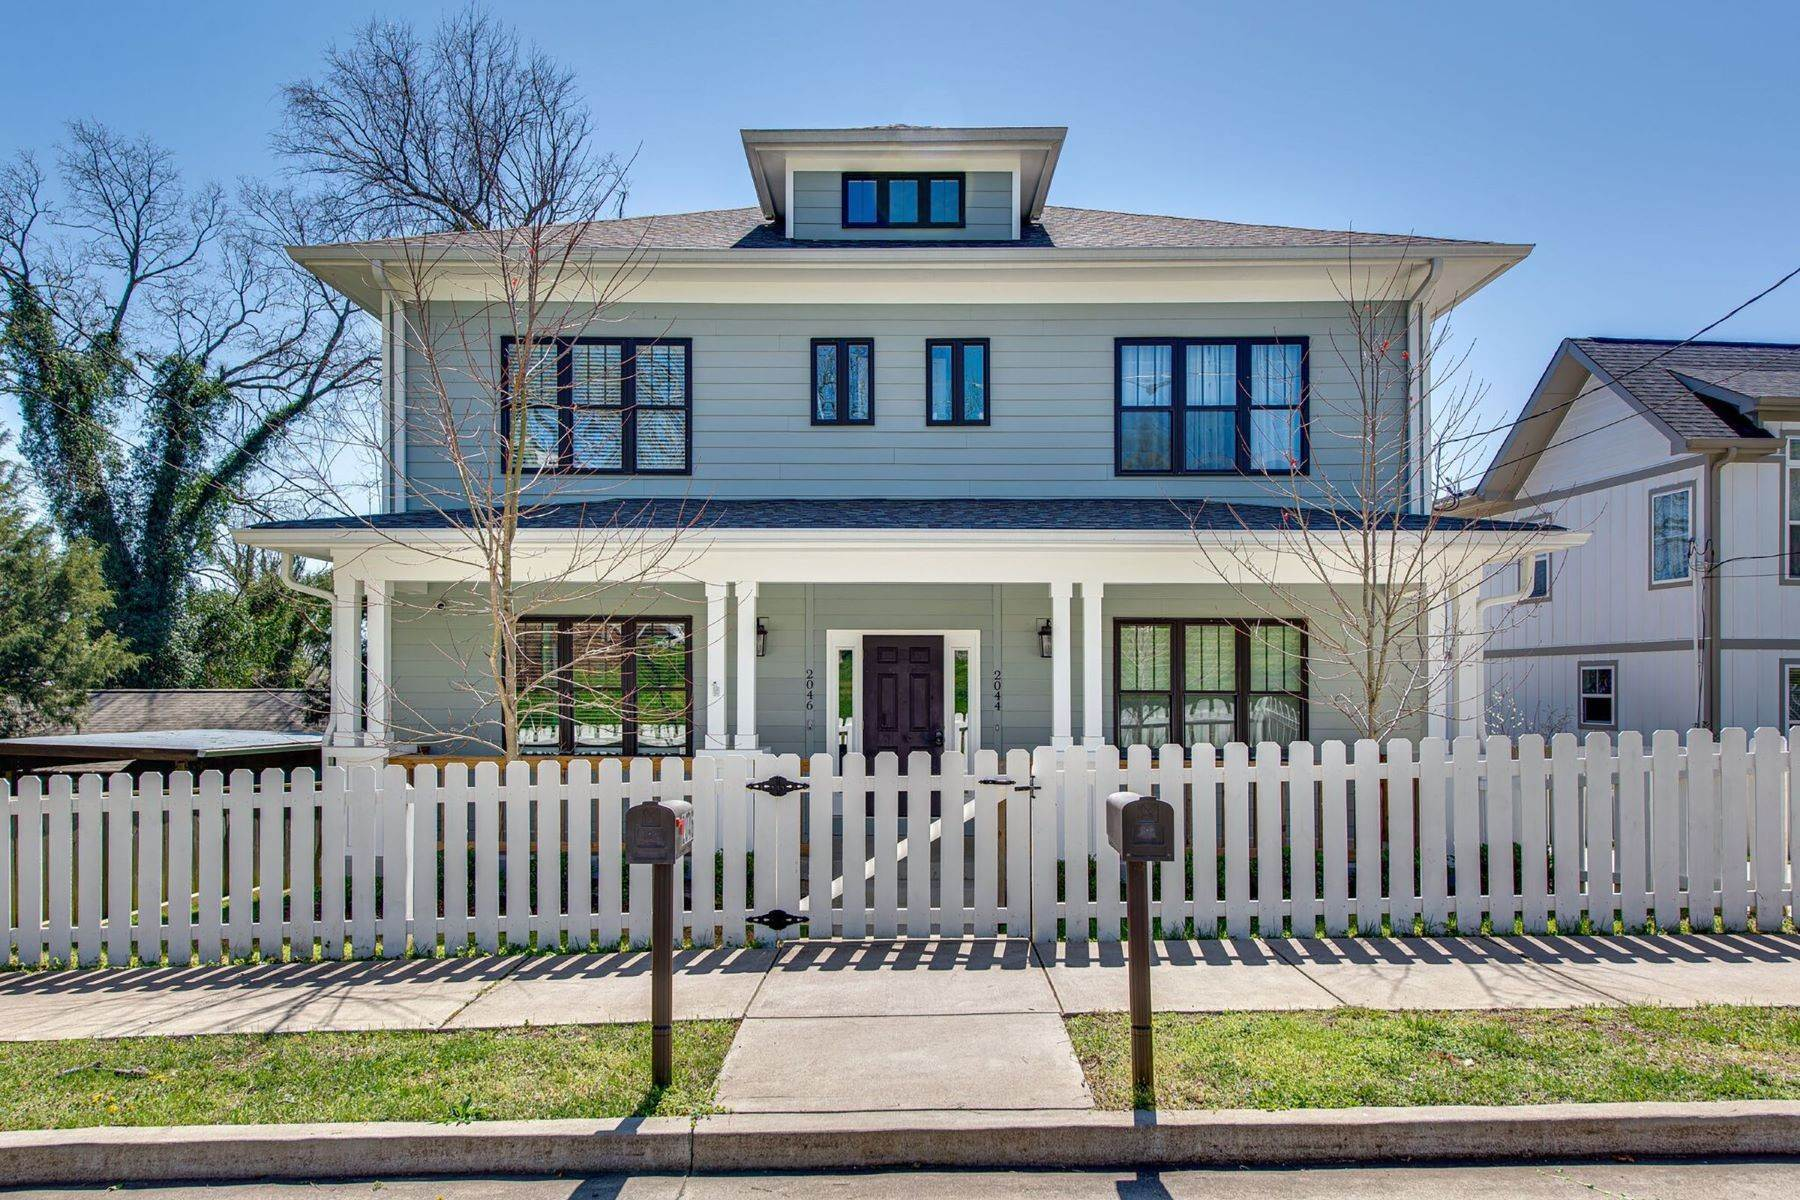 Single Family Homes for Sale at 2046 Straightway Avenue, Nashville, TN 37206 2046 Straightway Avenue Nashville, Tennessee 37206 United States